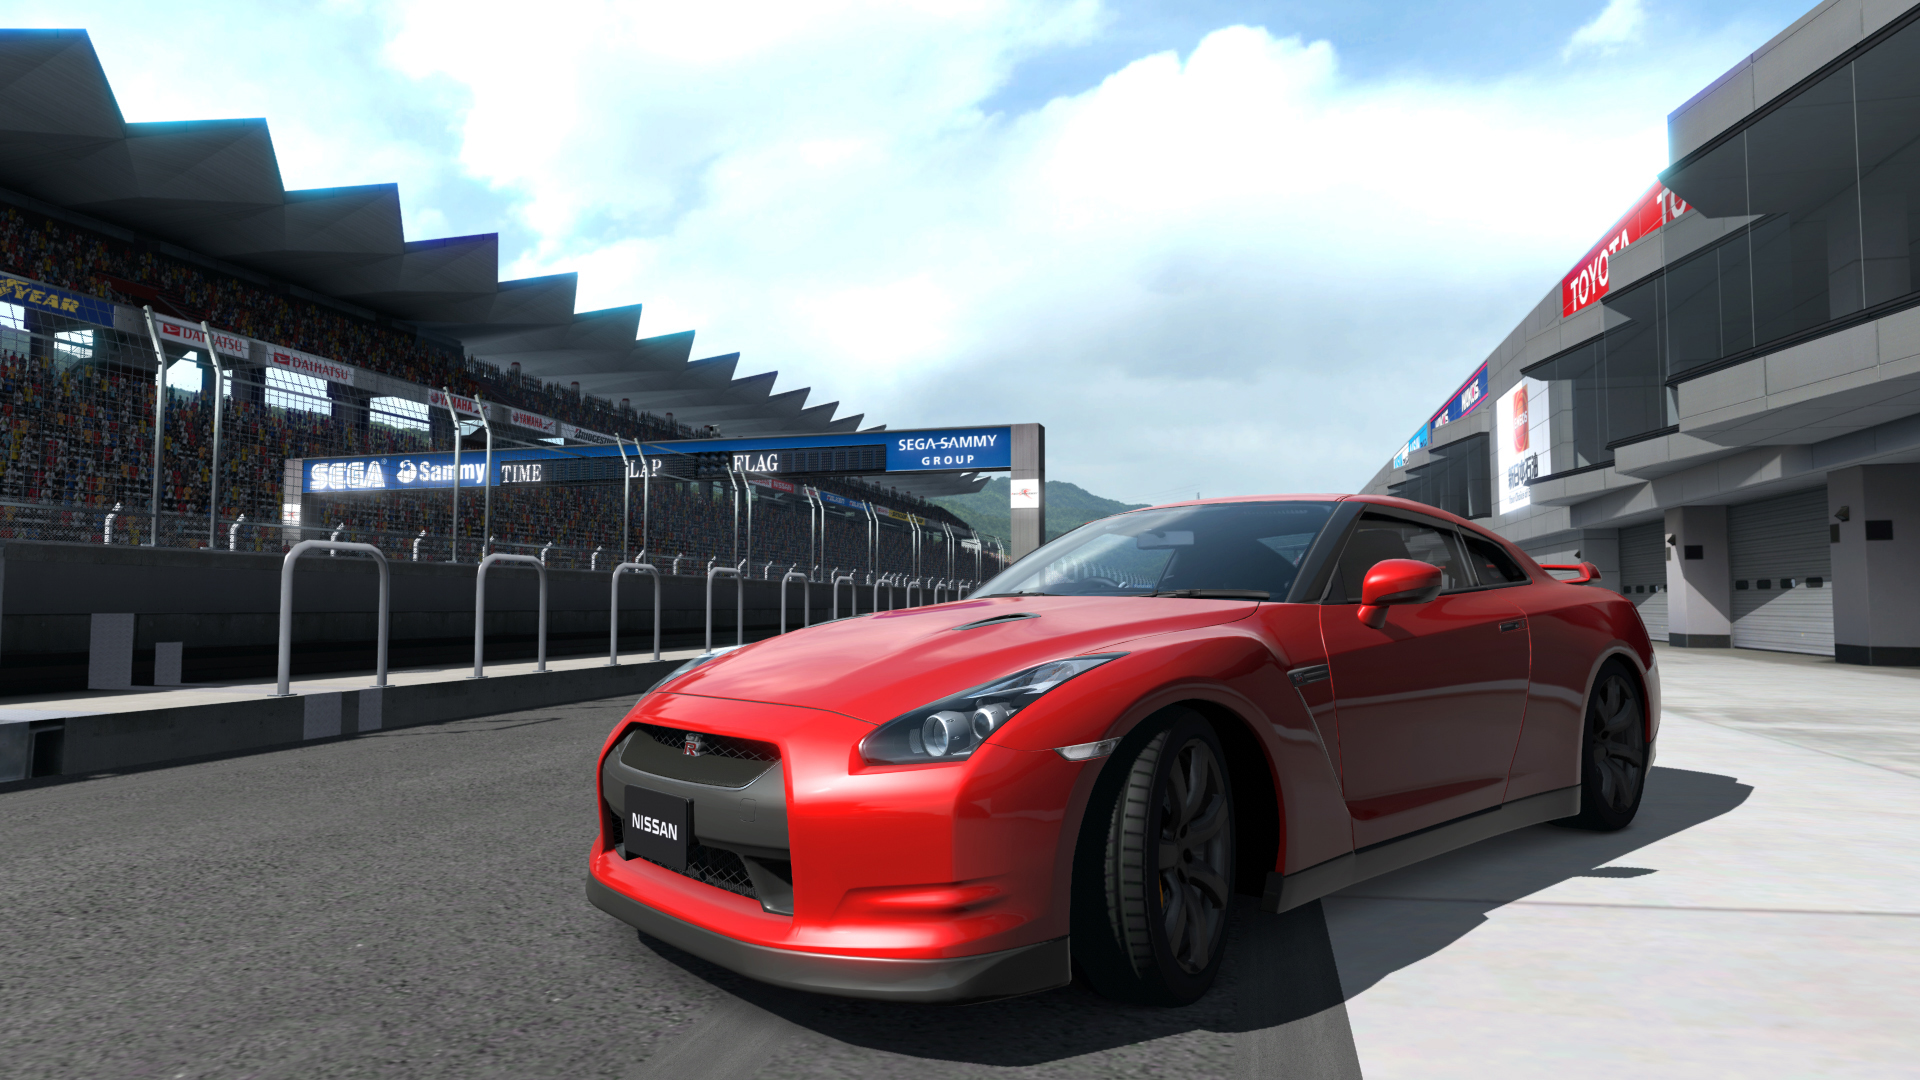 Red Nissan GT-R Wallpapers